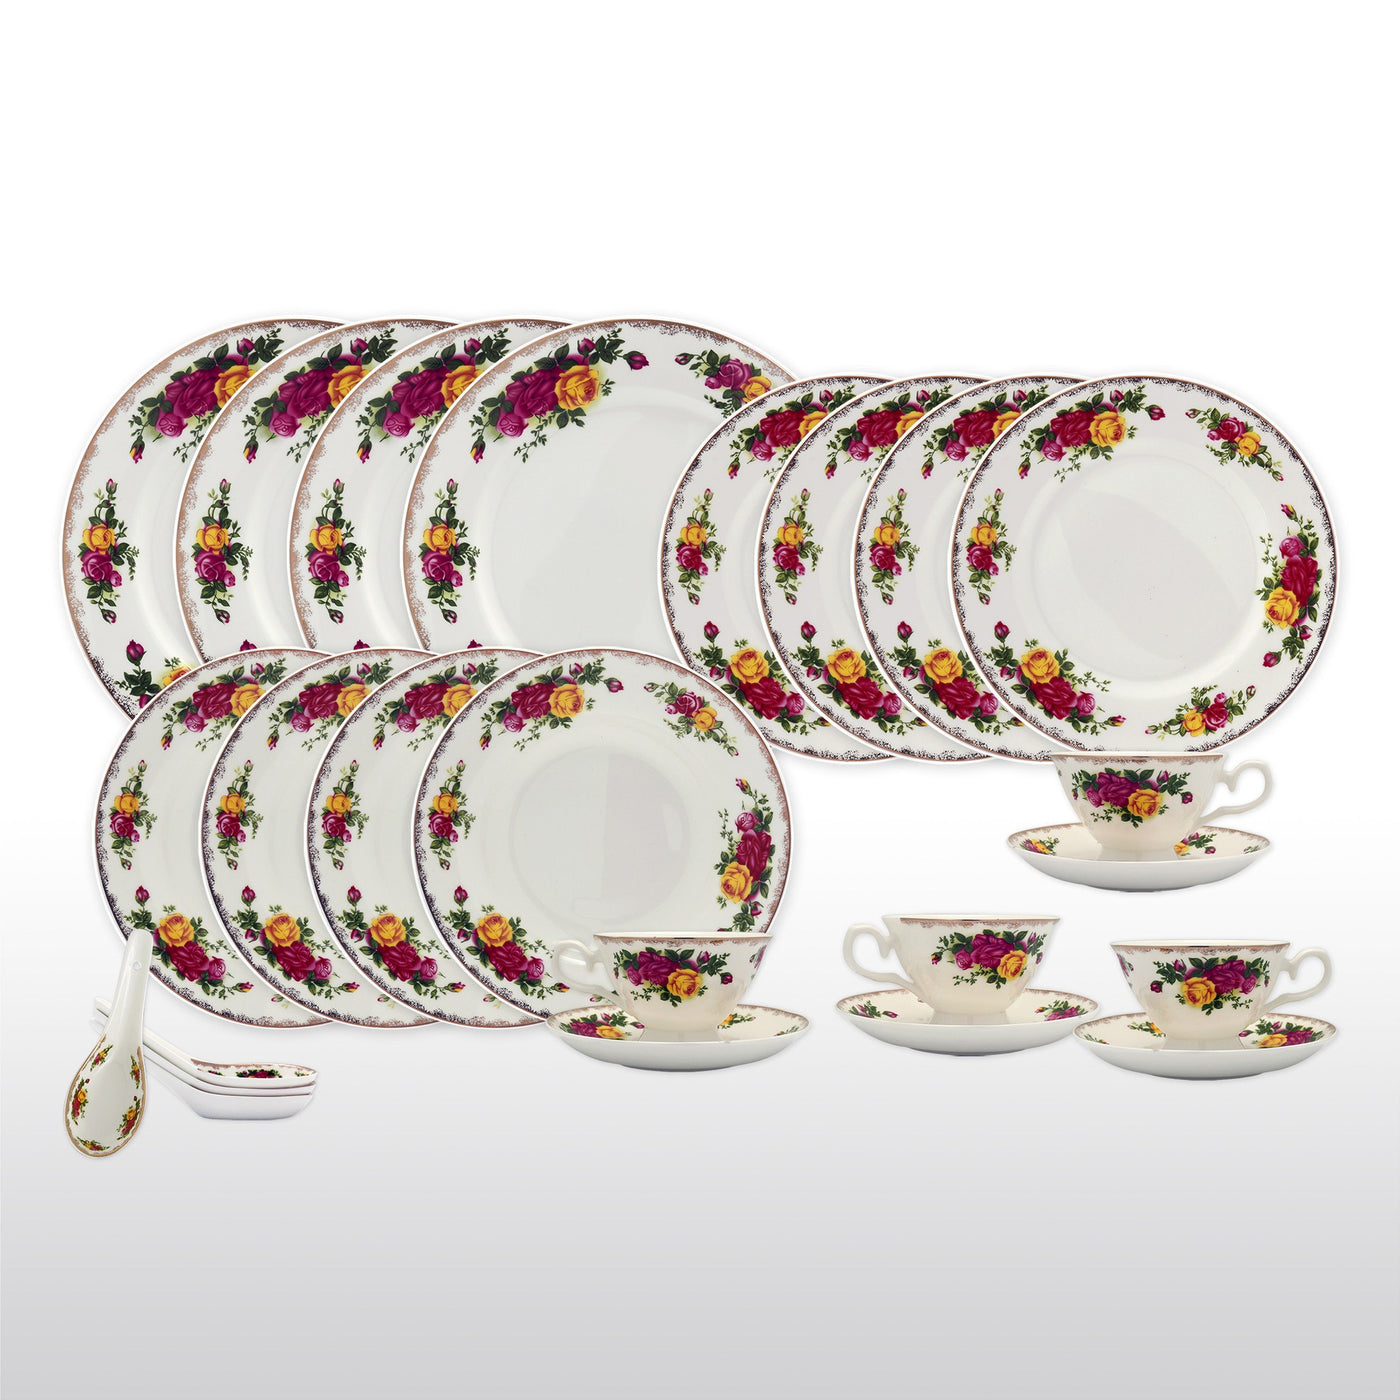 Dinnerwares Featured Products - Bone China 24 Piece Dinnerware Set English Rose Designs Service ...  sc 1 st  Homenique.net & Fine Bone China Dinnerware Set - 24 Piece Service for 4 - English ...